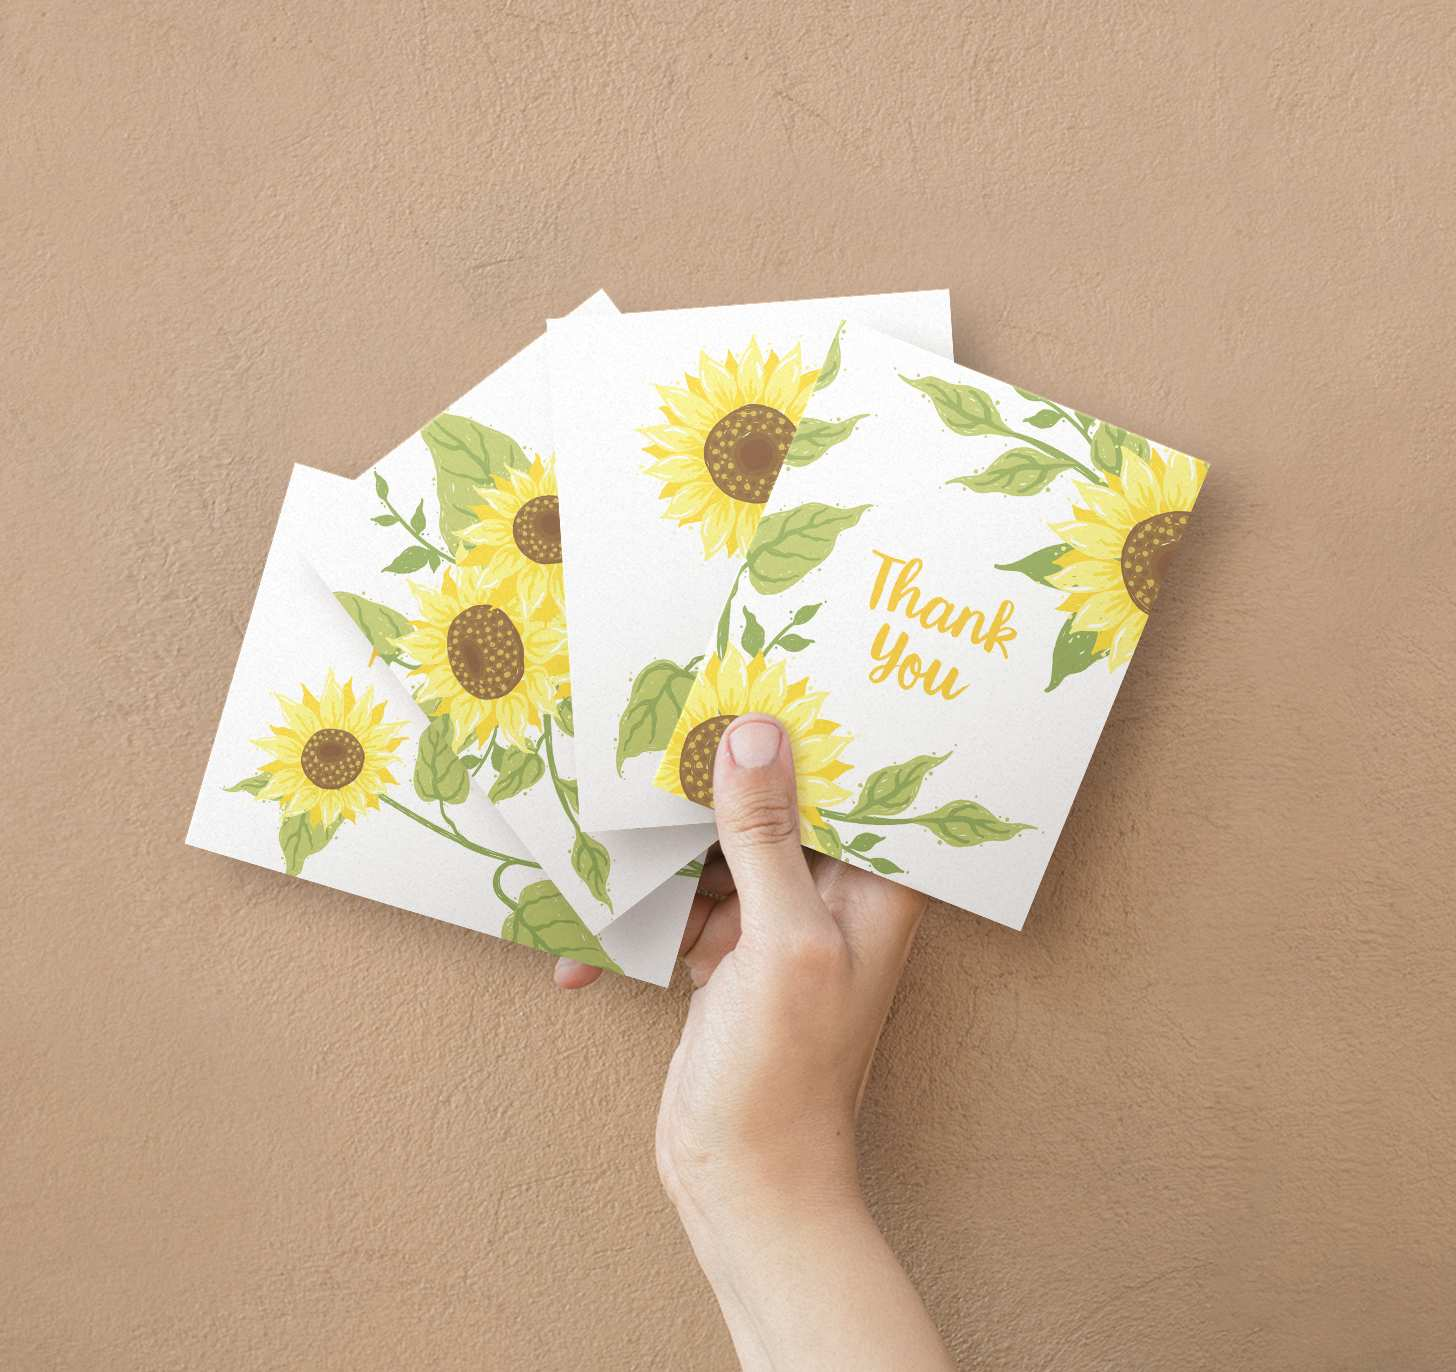 Hand holding four overlapping assorted yellow sunflower designed cards